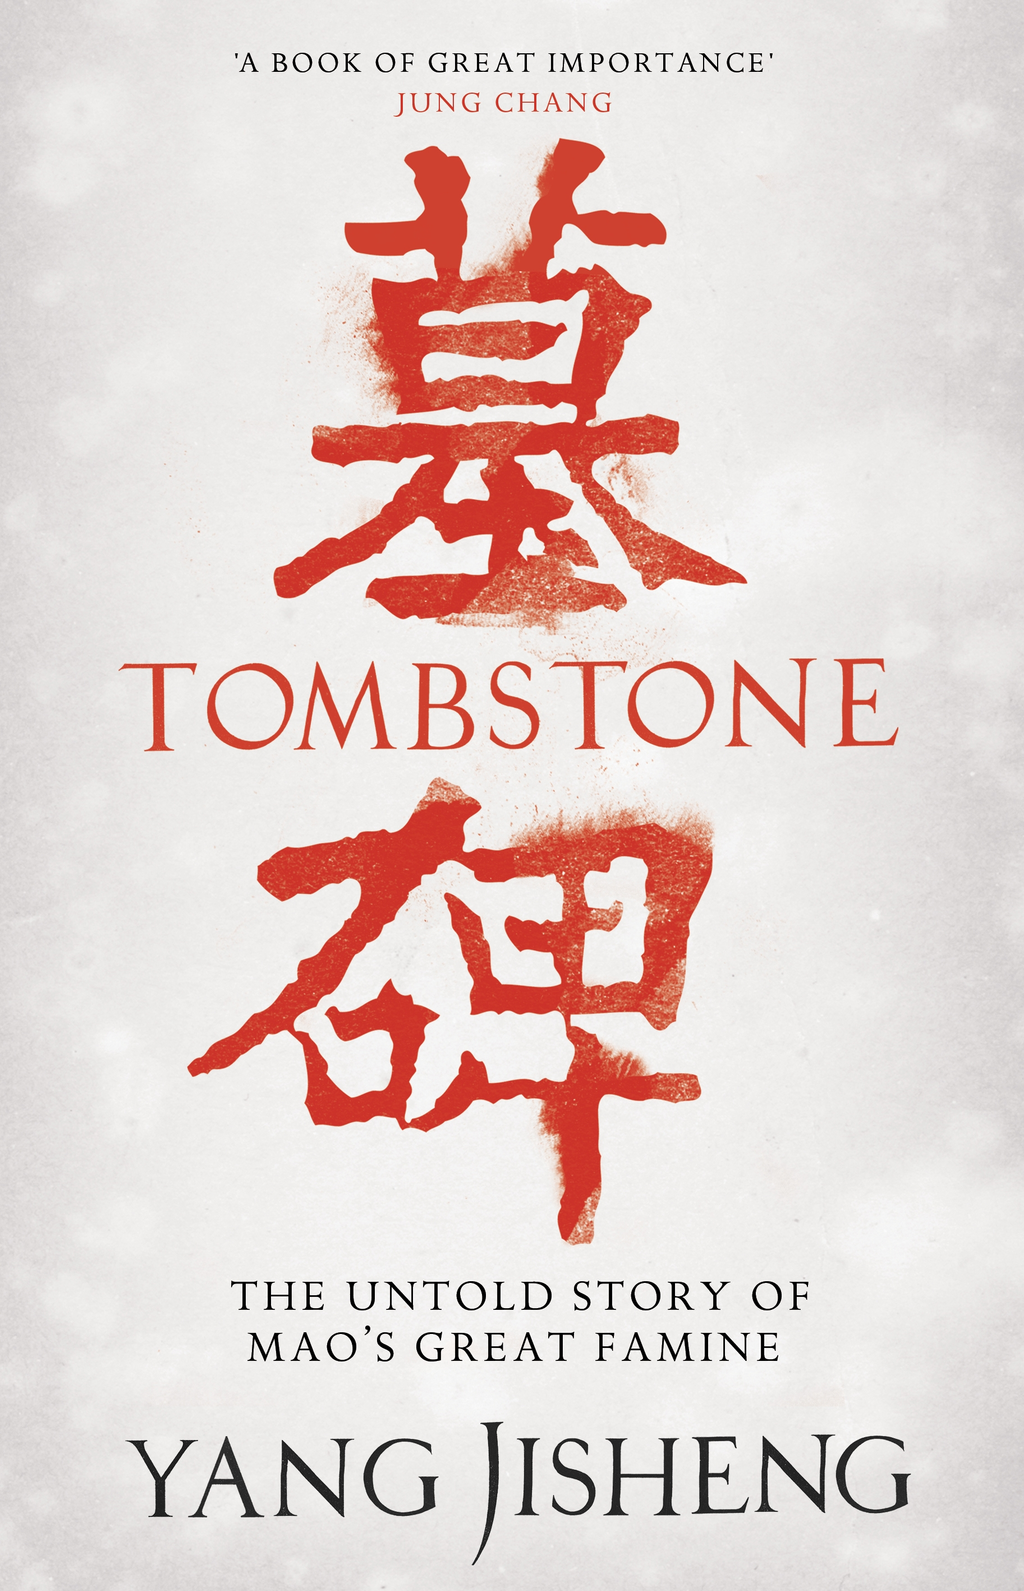 Tombstone The Untold Story of Mao's Great Famine